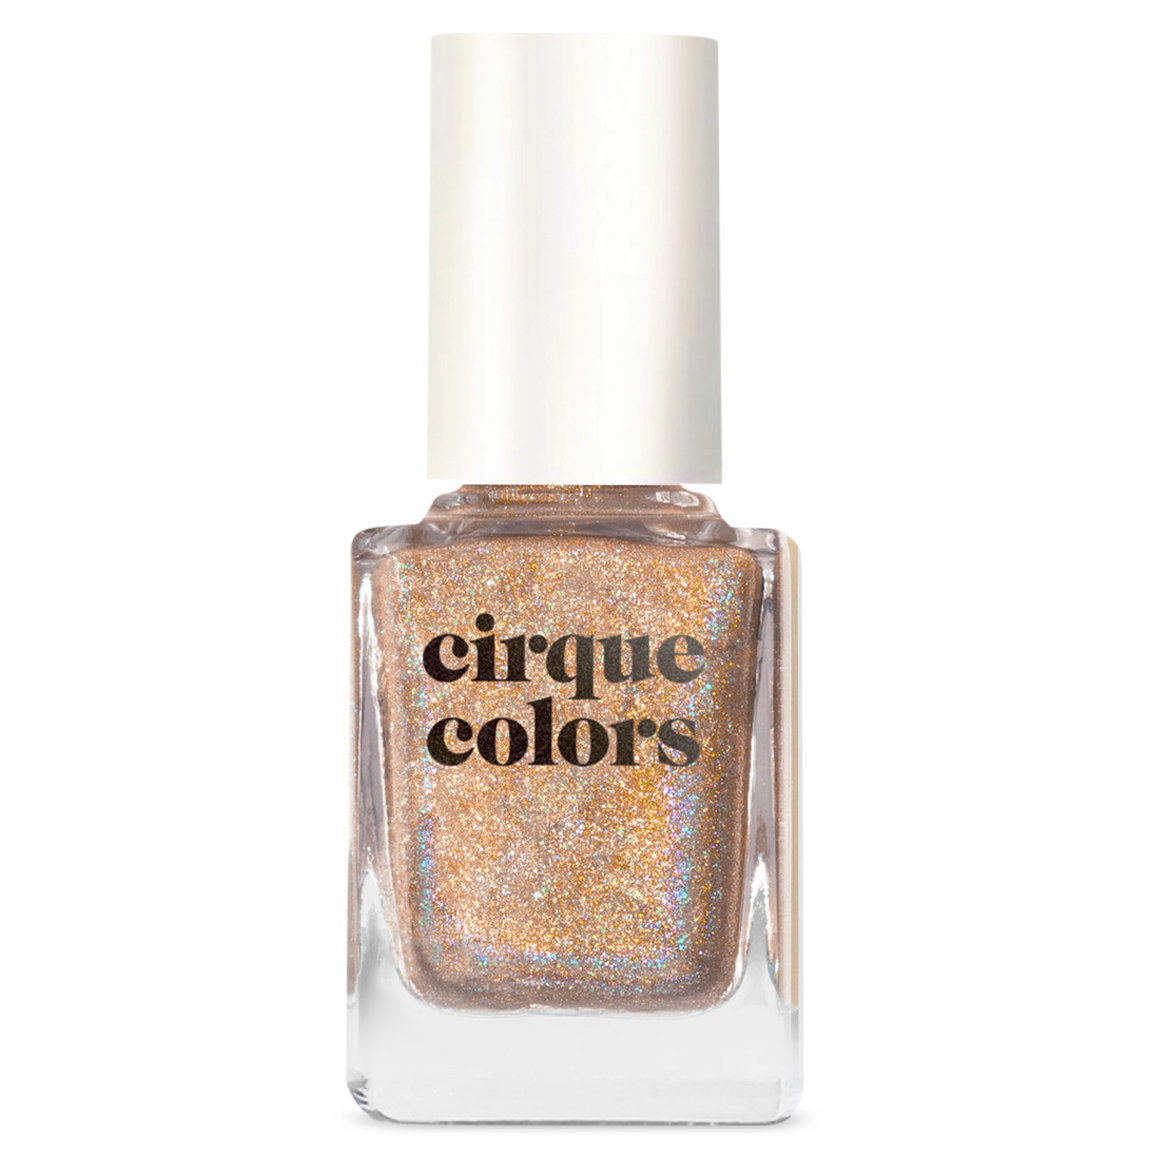 Cirque Colors Holographic Nail Polish Space Cowboy alternative view 1 - product swatch.